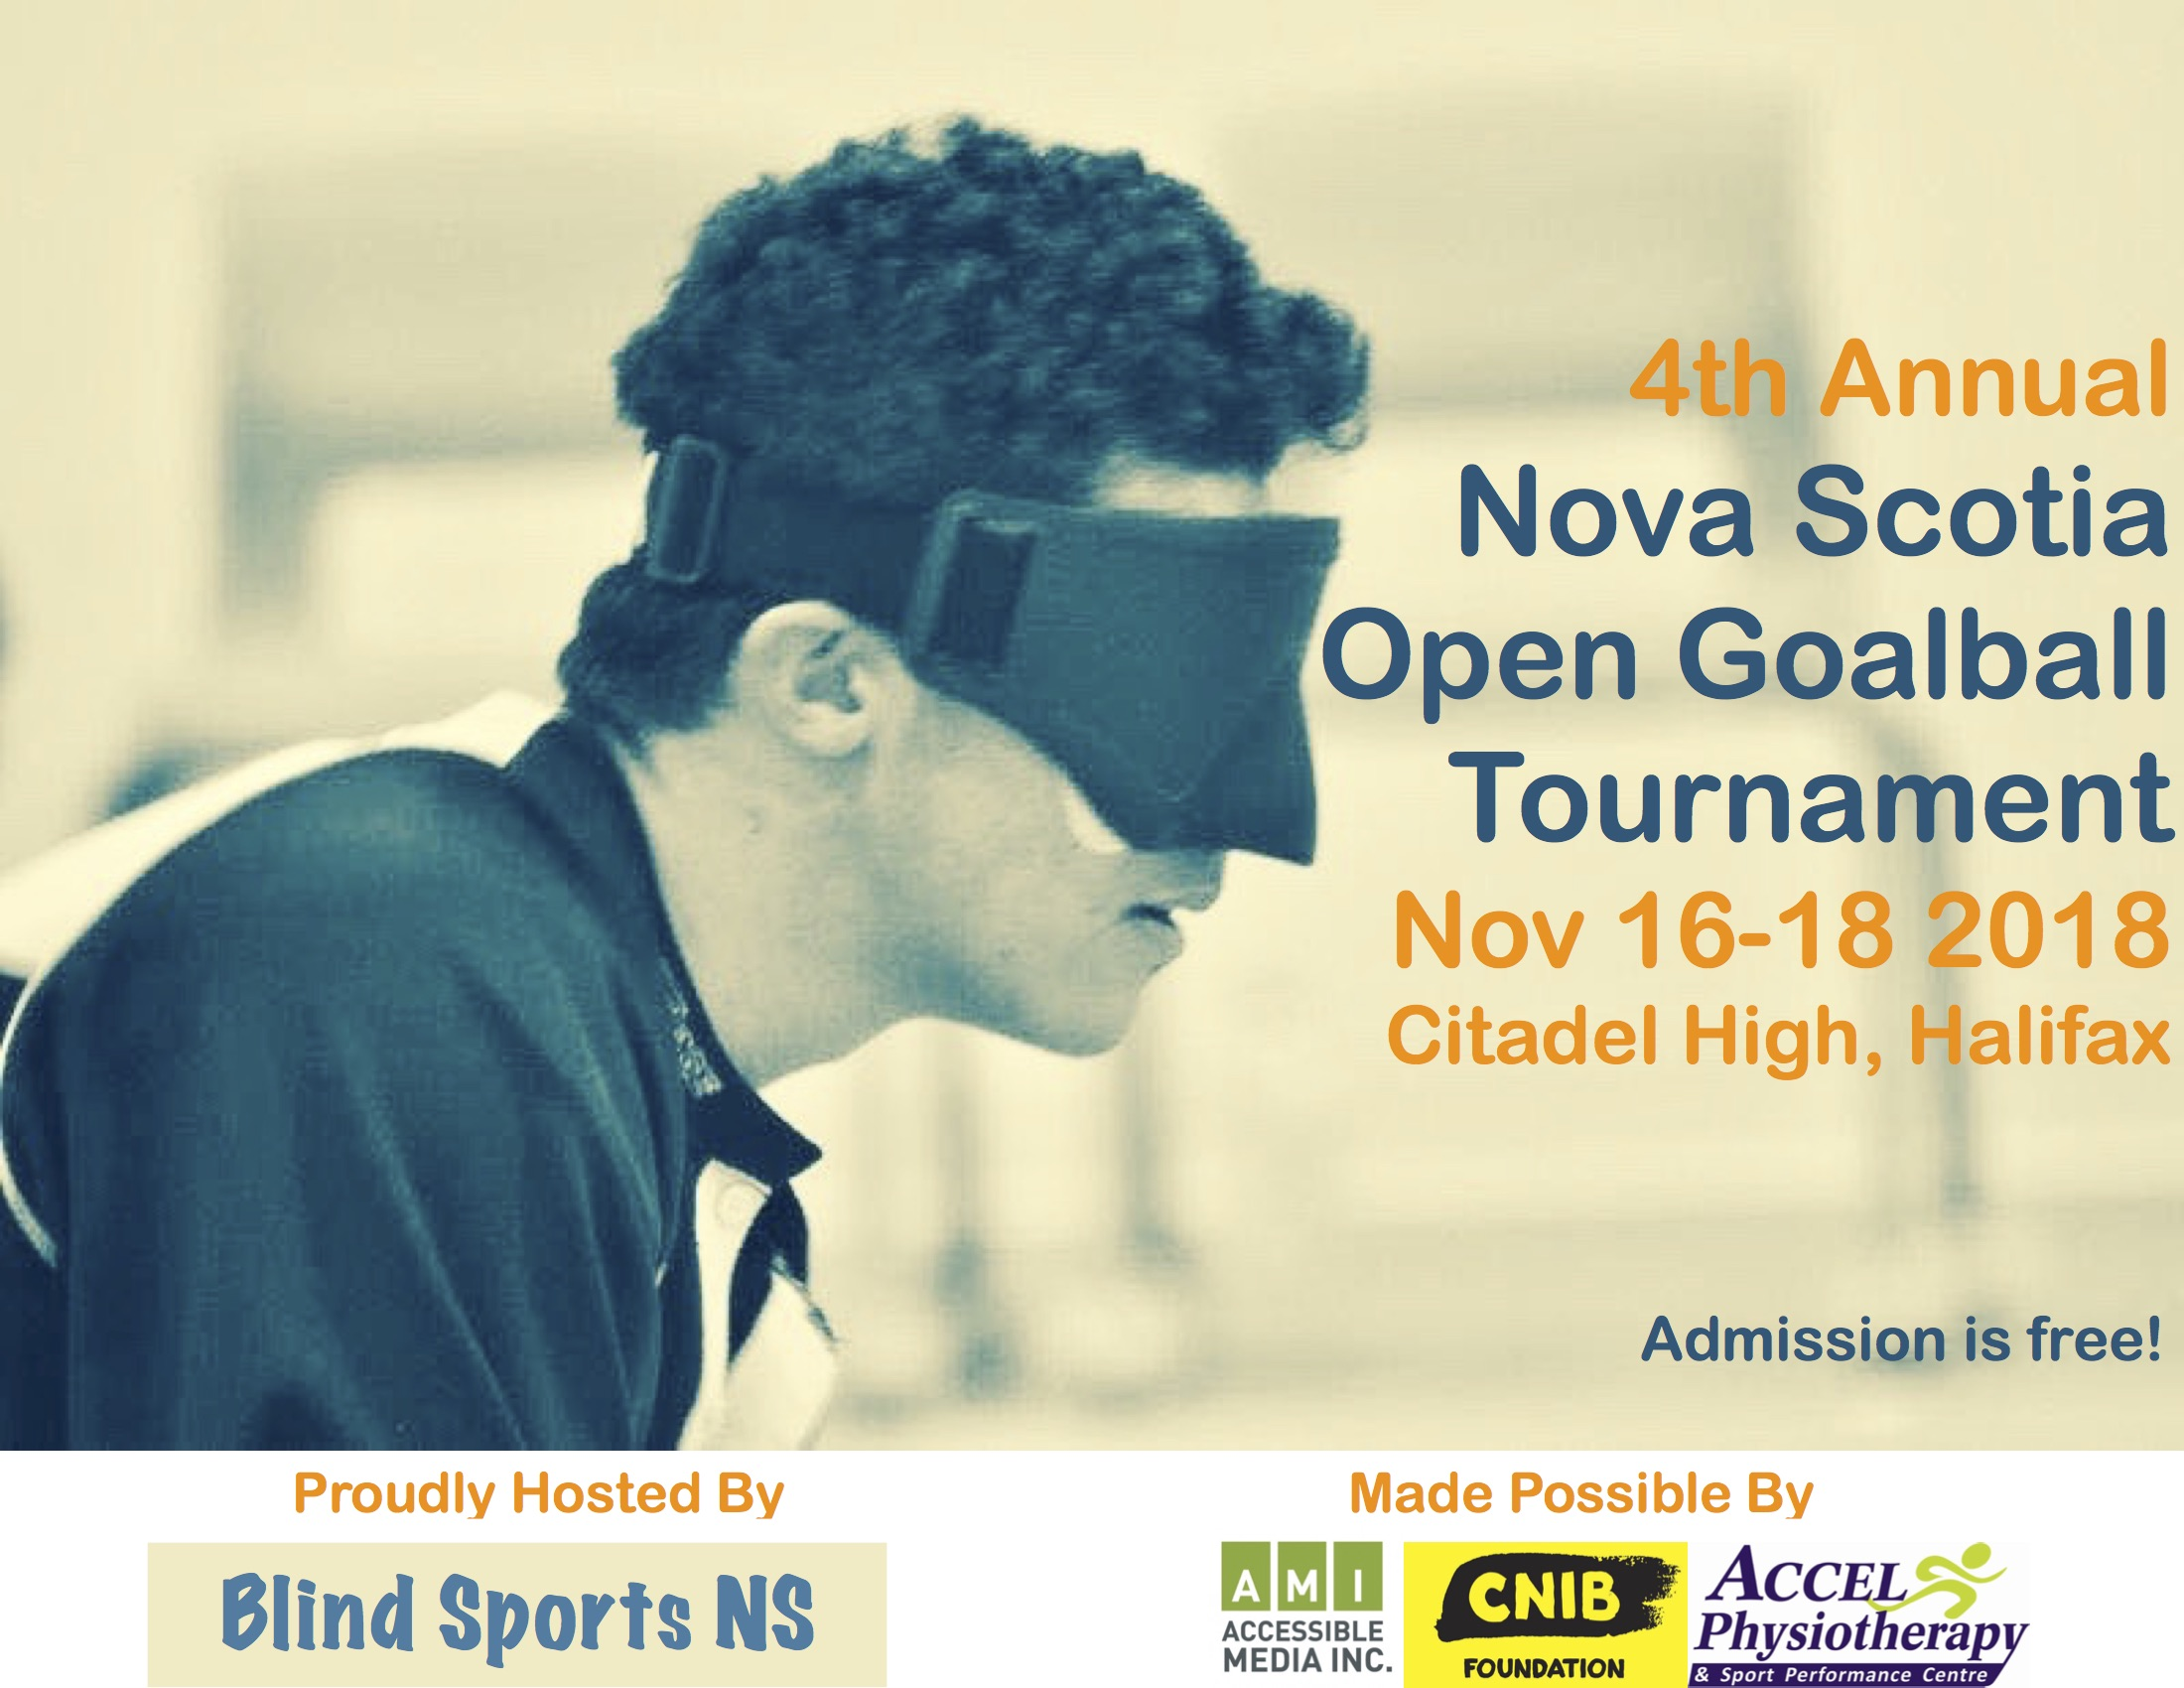 Event Poster. Shoulders-up profile of a male goalball athlete in eyeshades. Text reads 4th Annual  Nova Scotia Open Goalball Tournament Nov 16-18 2018 Citadel High, Halifax. Admission is free.  Proudly hosted by Blind sports NS. Made Possible by Accessible Media Inc. CNIB Foundation. Accel Physiotherapy & Sport Performance Centre. — with Accessible Media Inc., CNIB Nova Scotia-Prince Edward Island and ACCEL Physiotherapy and Sport Performance Centre.